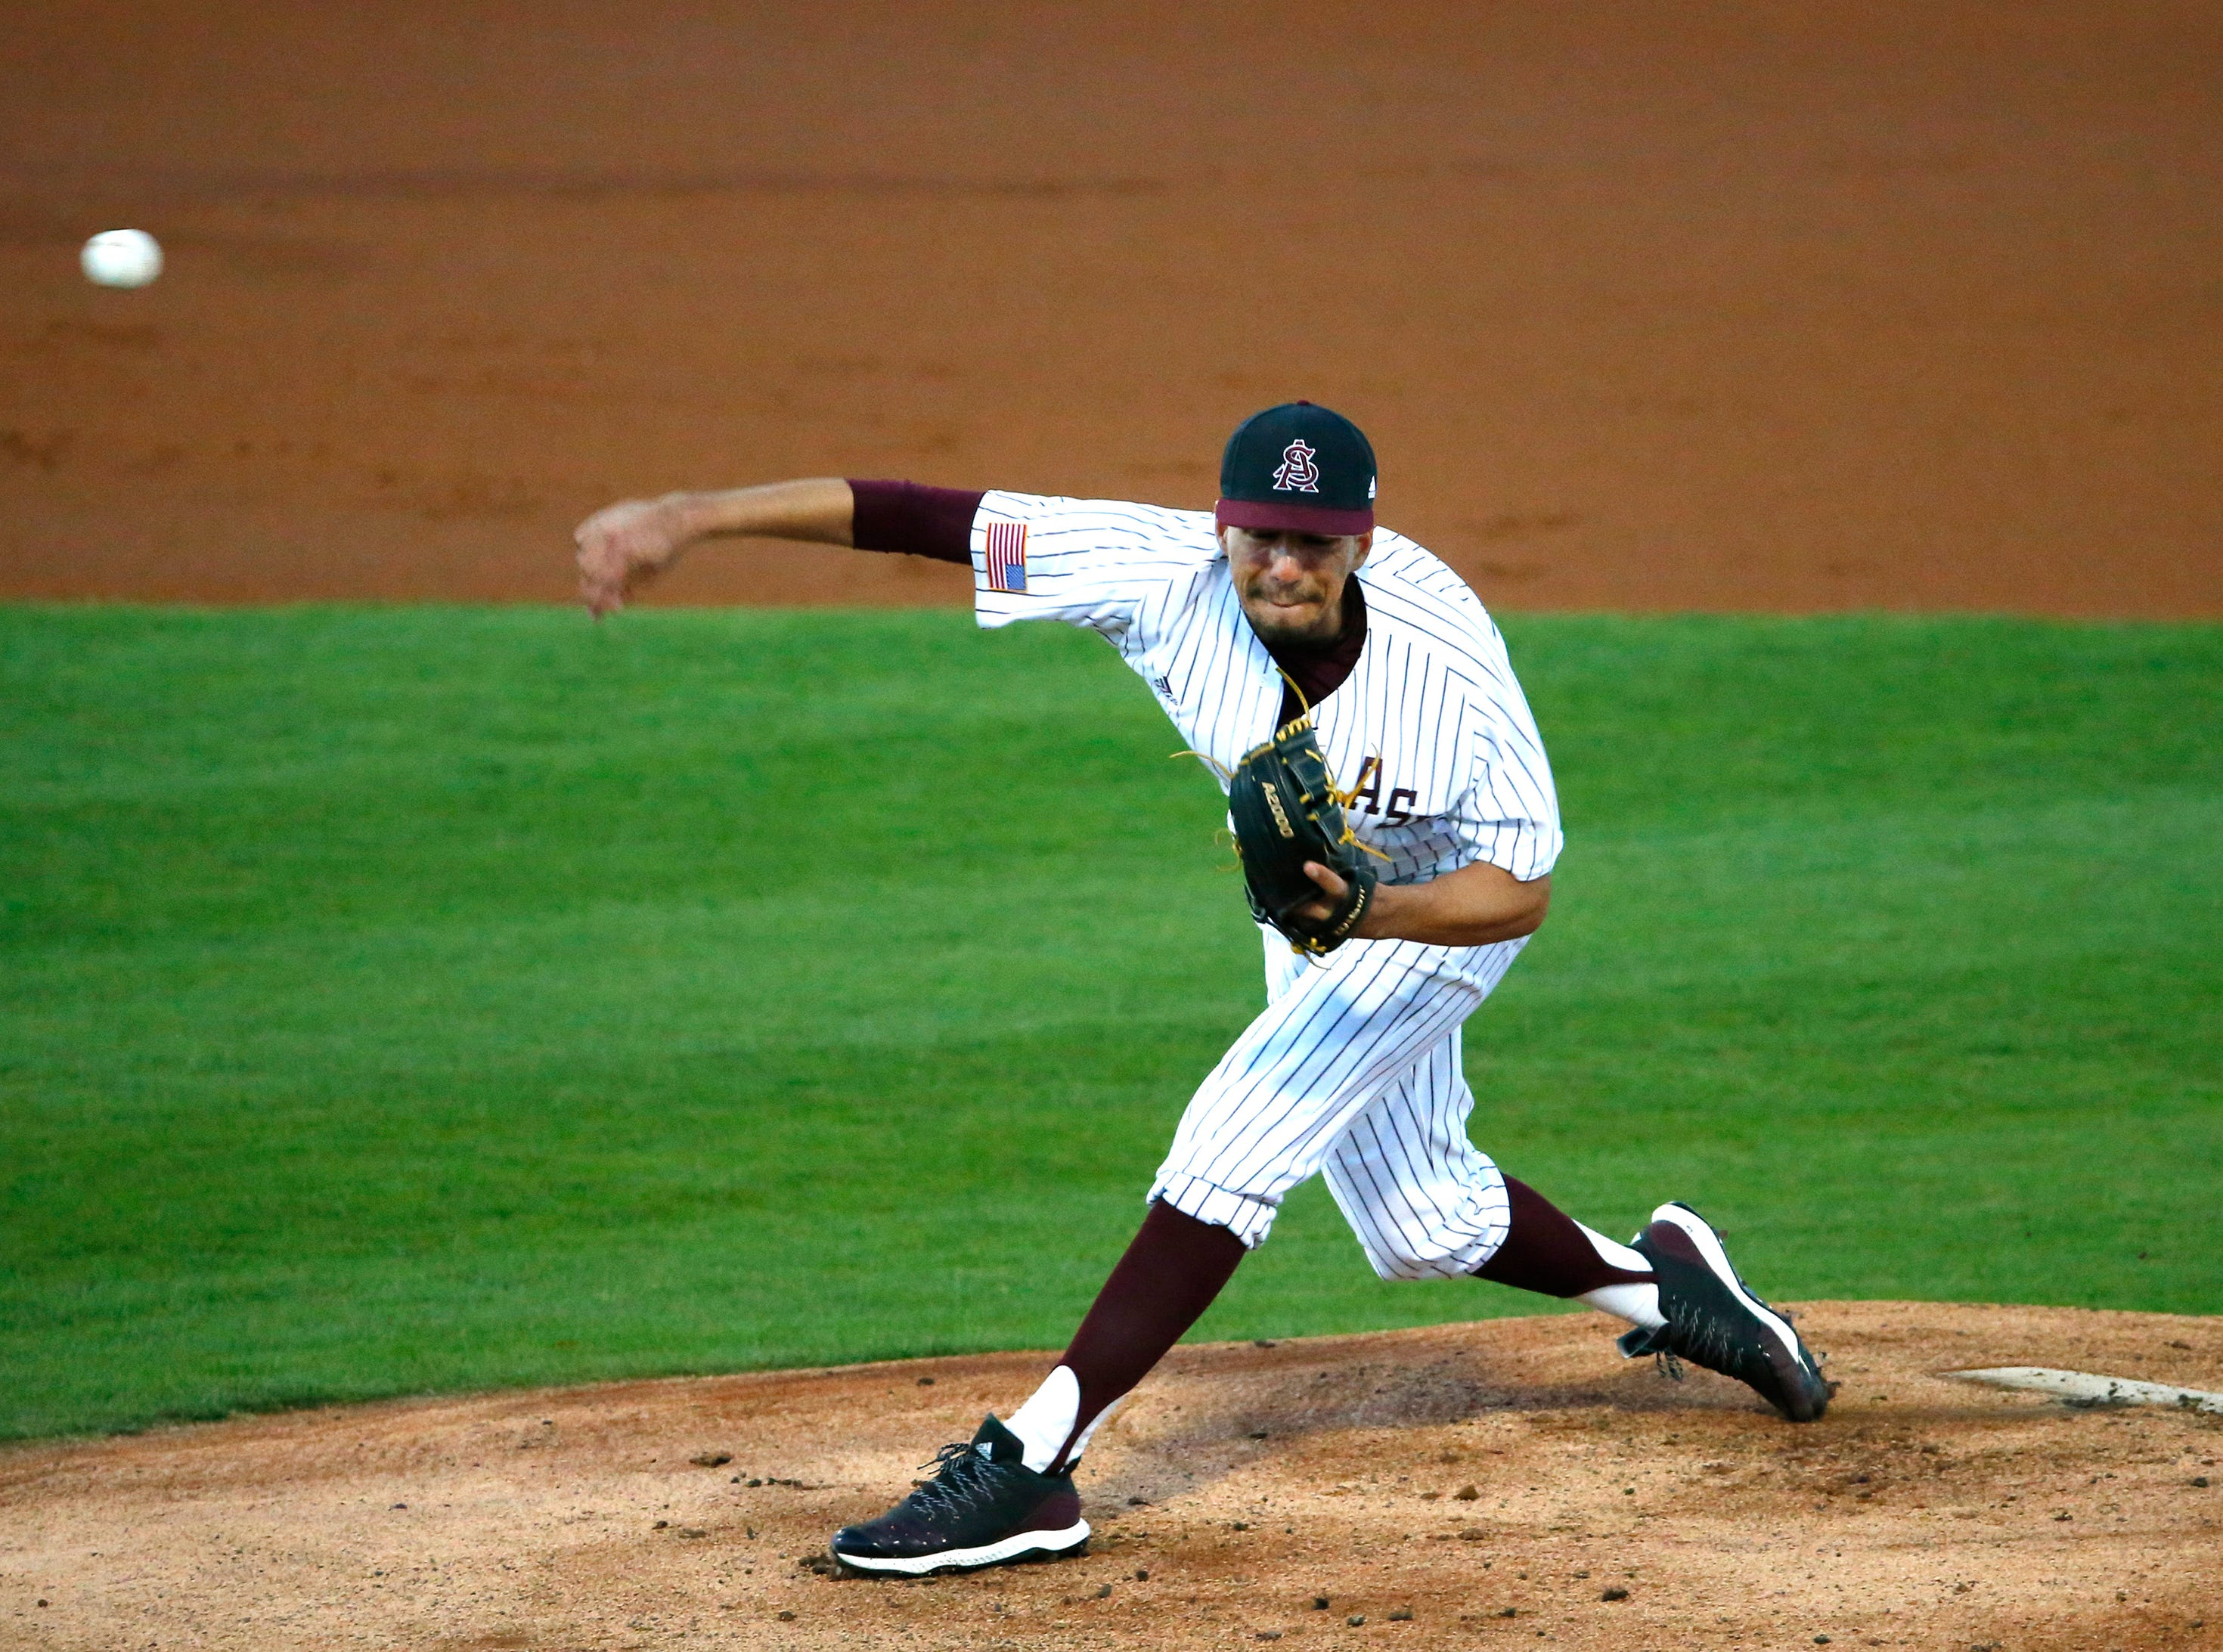 ASU RHP Sam Romero (26) throws during a baseball game against New Mexico at Phoenix Municipal Stadium on March 13, 2019.